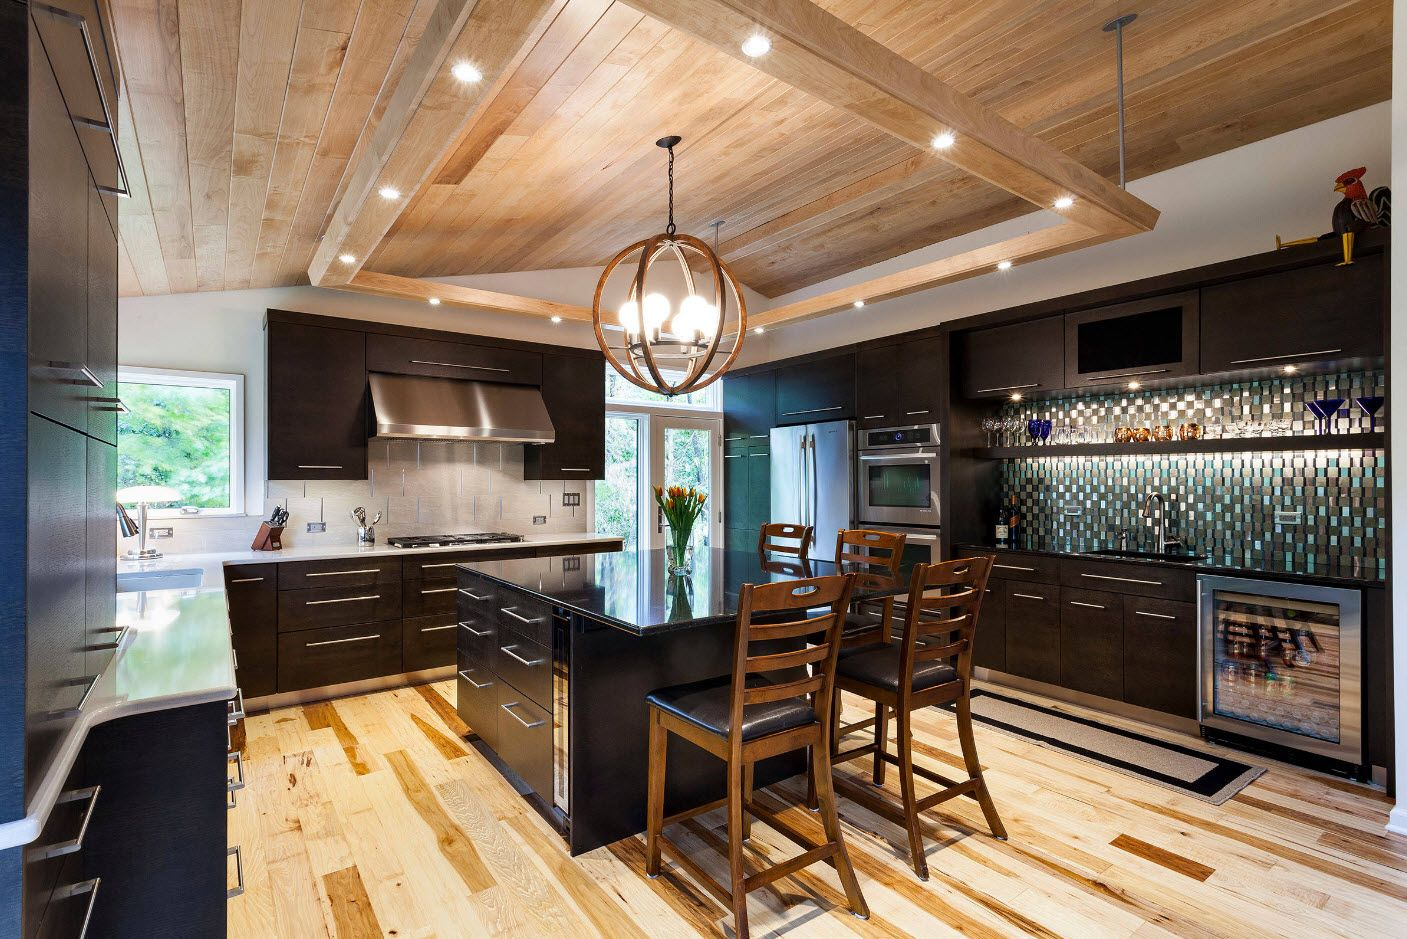 Nice color mix of the light wooden ceiling and florr and dark kitchen set furniture facades